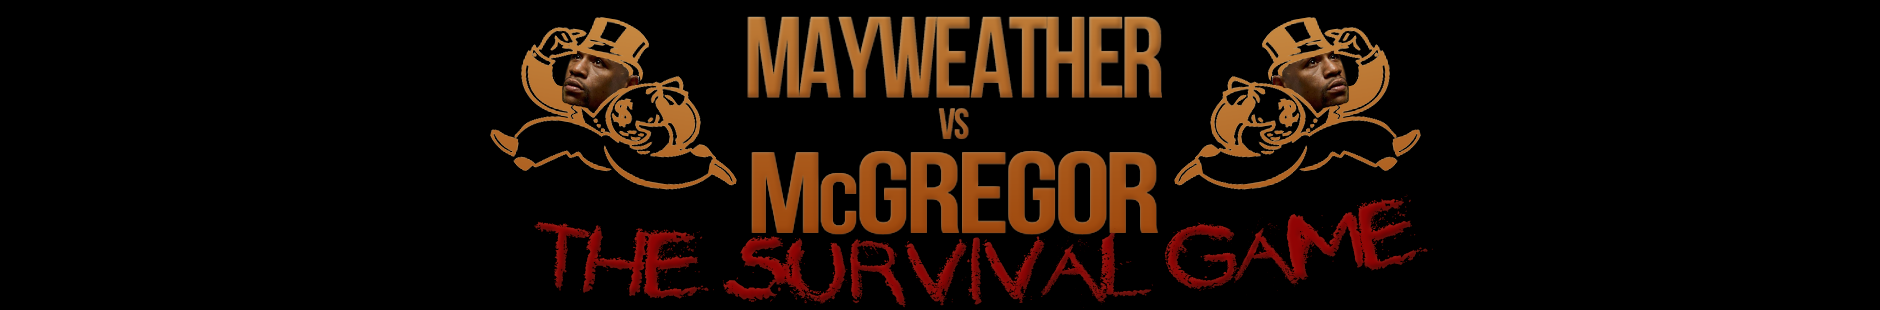 McGregor vs Mayweather - The Suvival Game